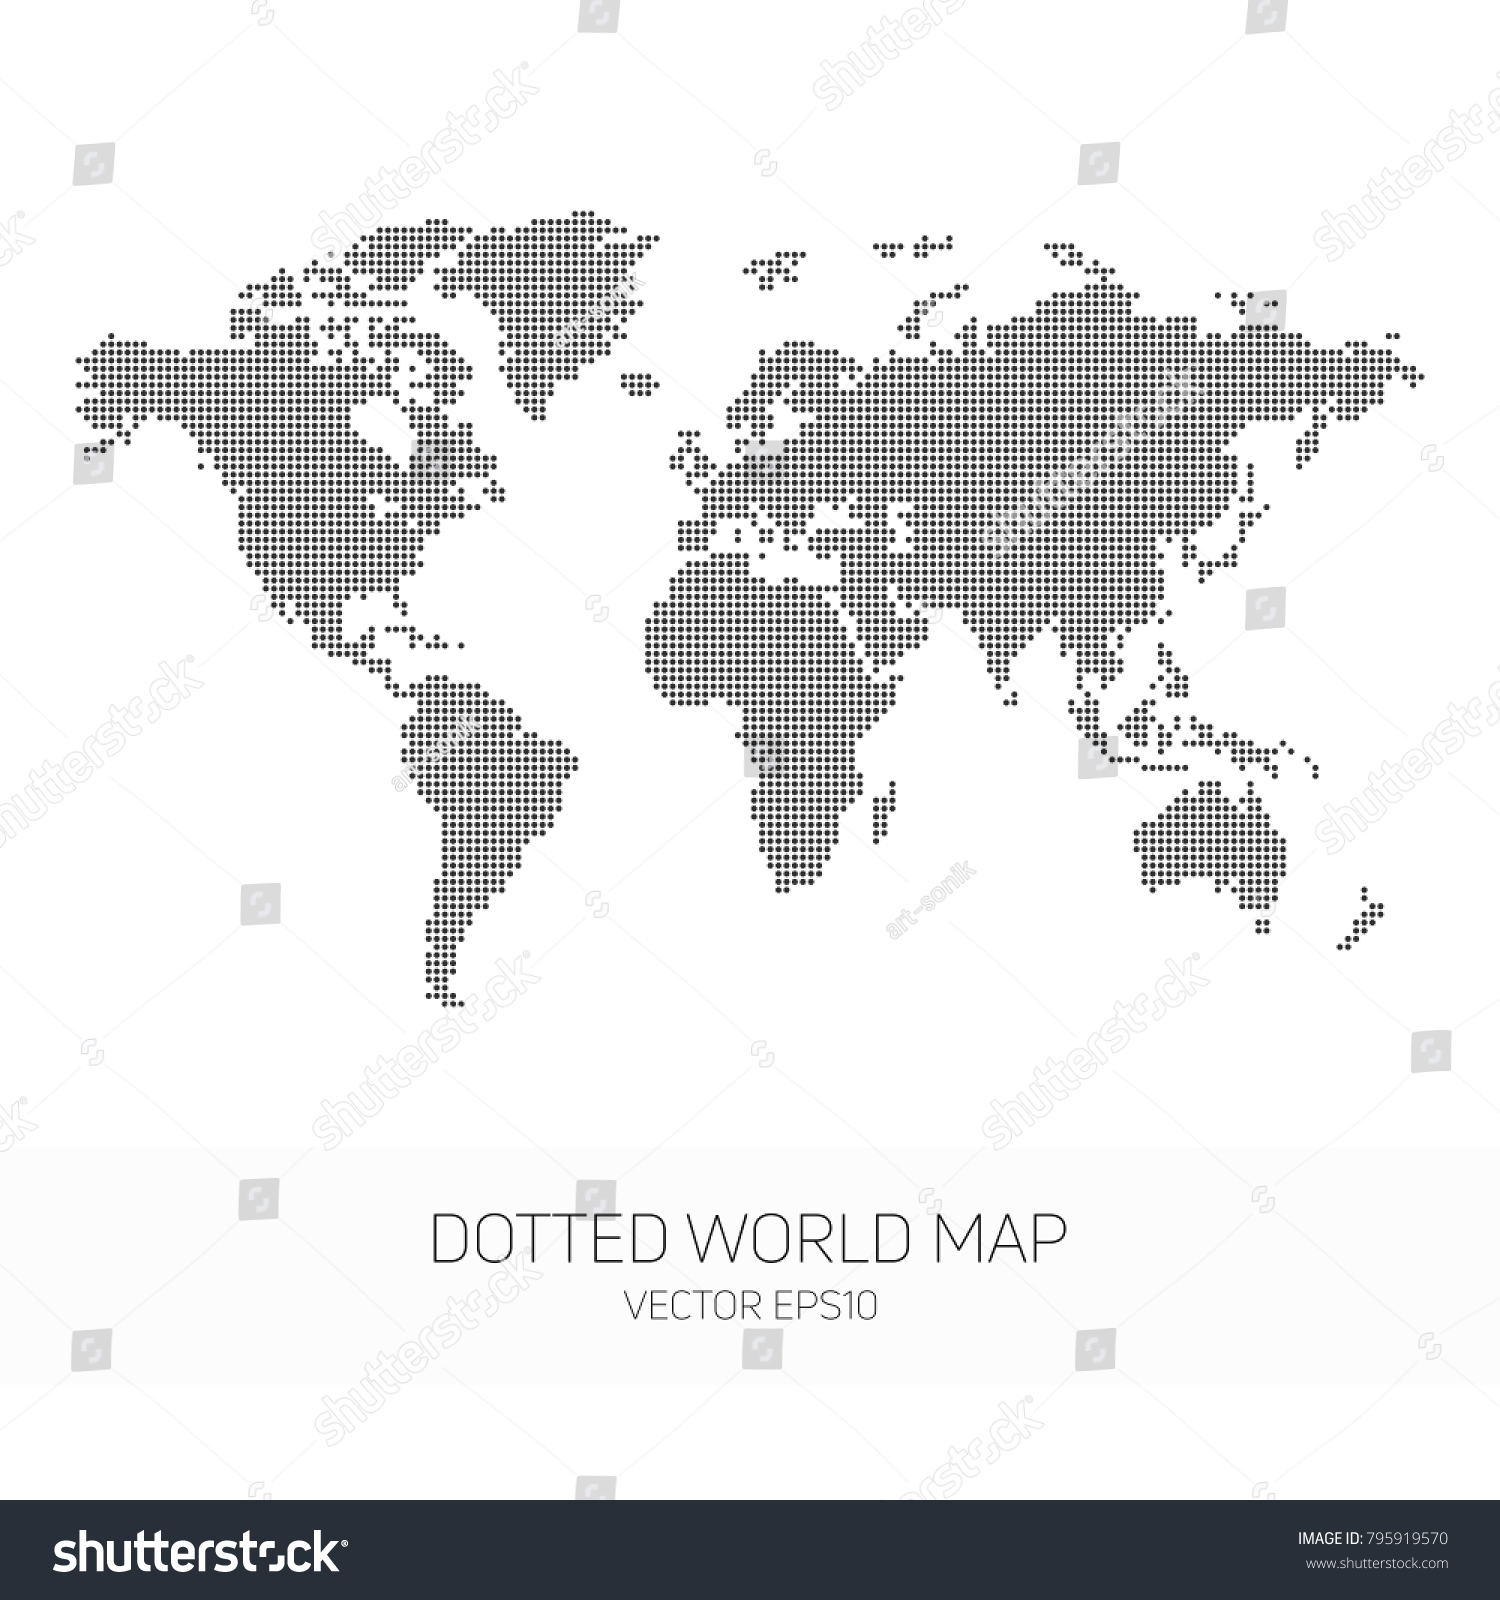 Dotted world map vector template world stock vector royalty free dotted world map vector template of world map for website cover design or gumiabroncs Choice Image